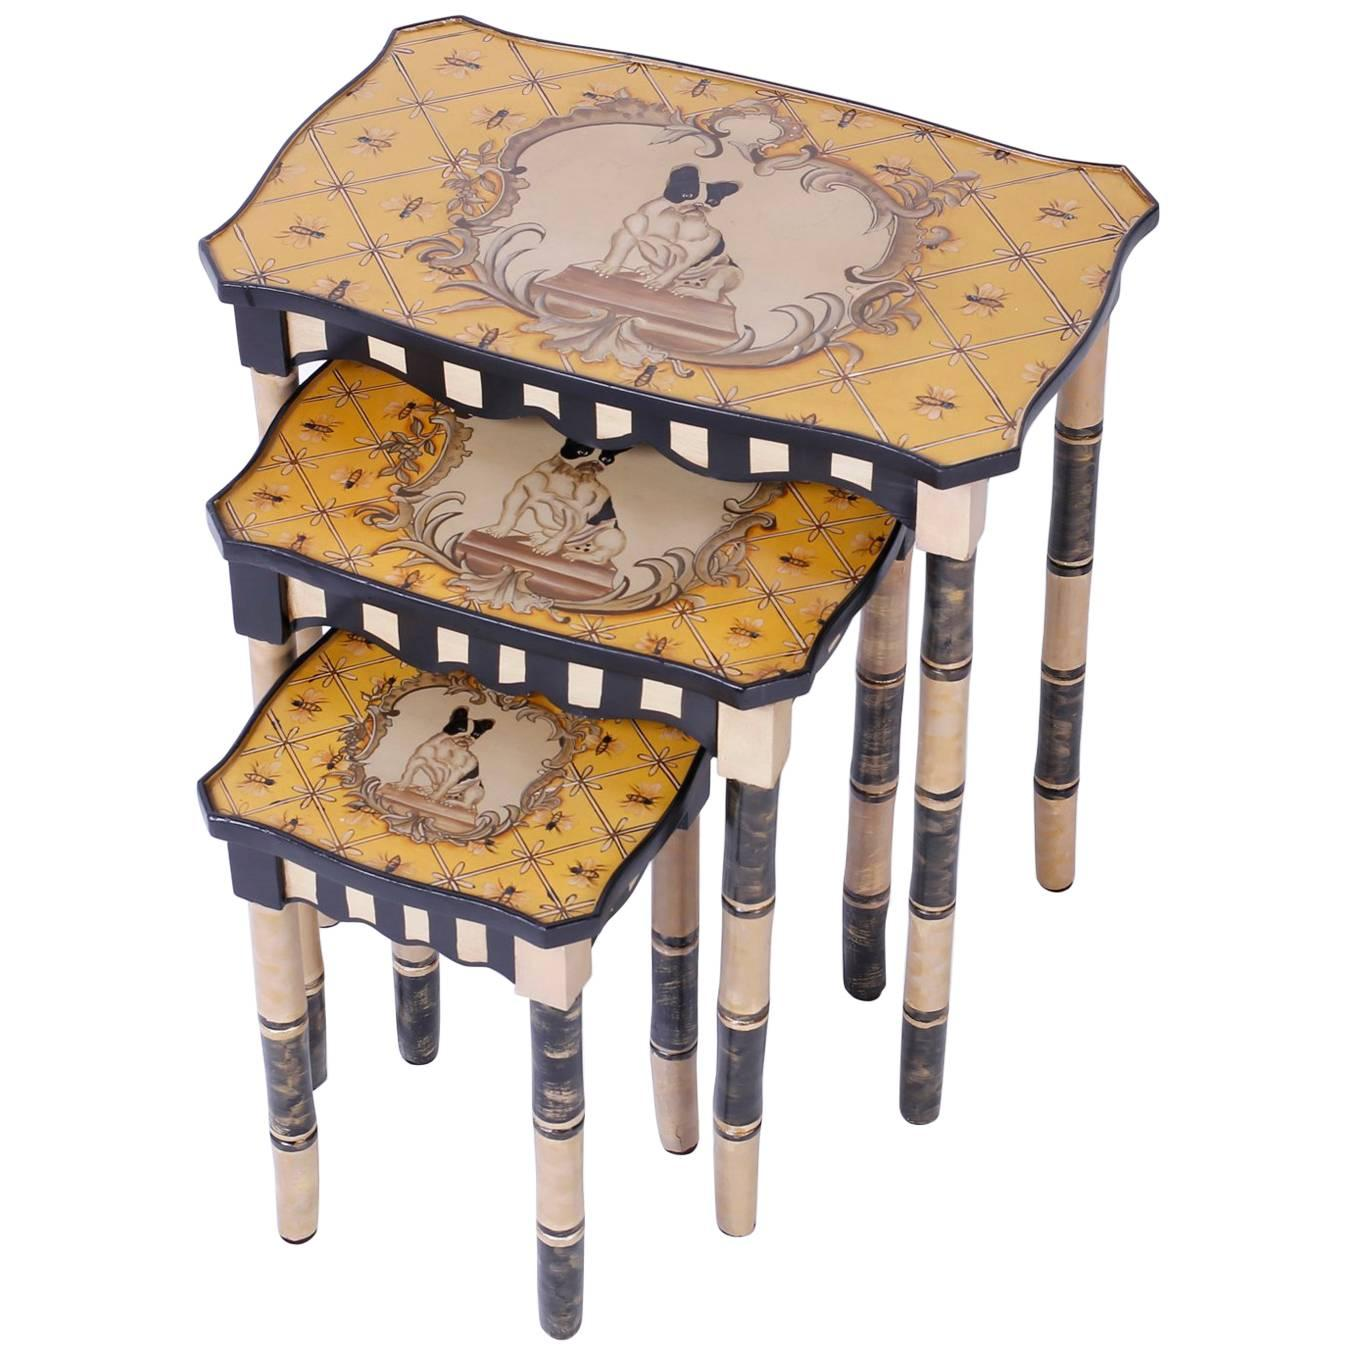 Dog Themed Nesting Tables